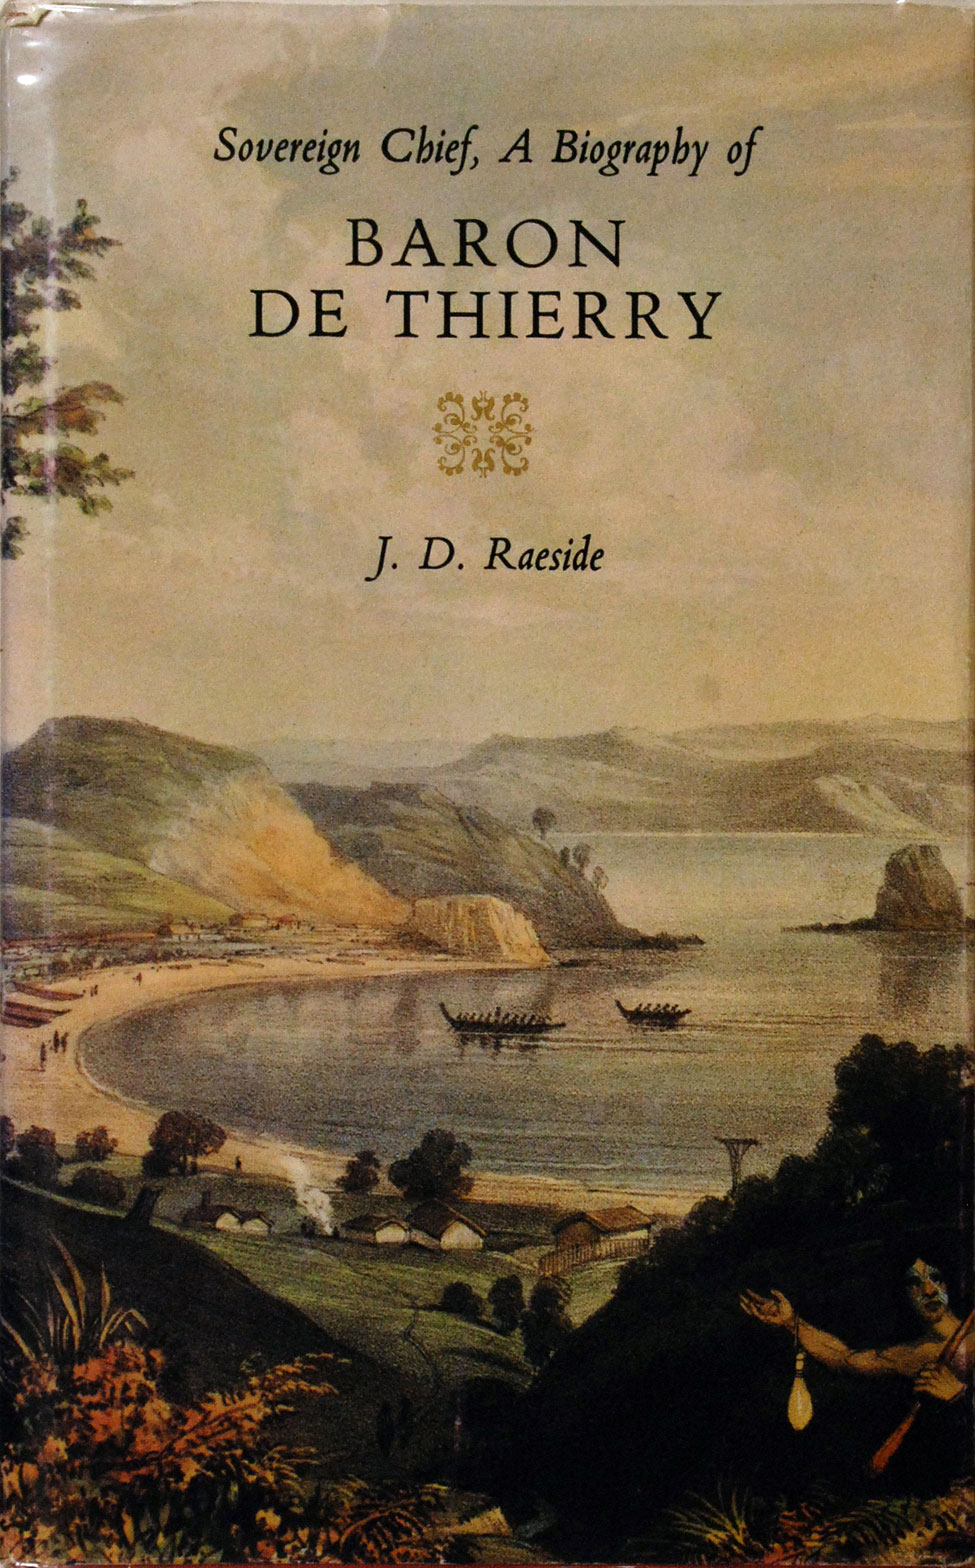 J. D. Raeside. Sovereign Chief: A Biography of Baron de Thierry. <i>Christchurch: The Caxton Press, 1977.</i>